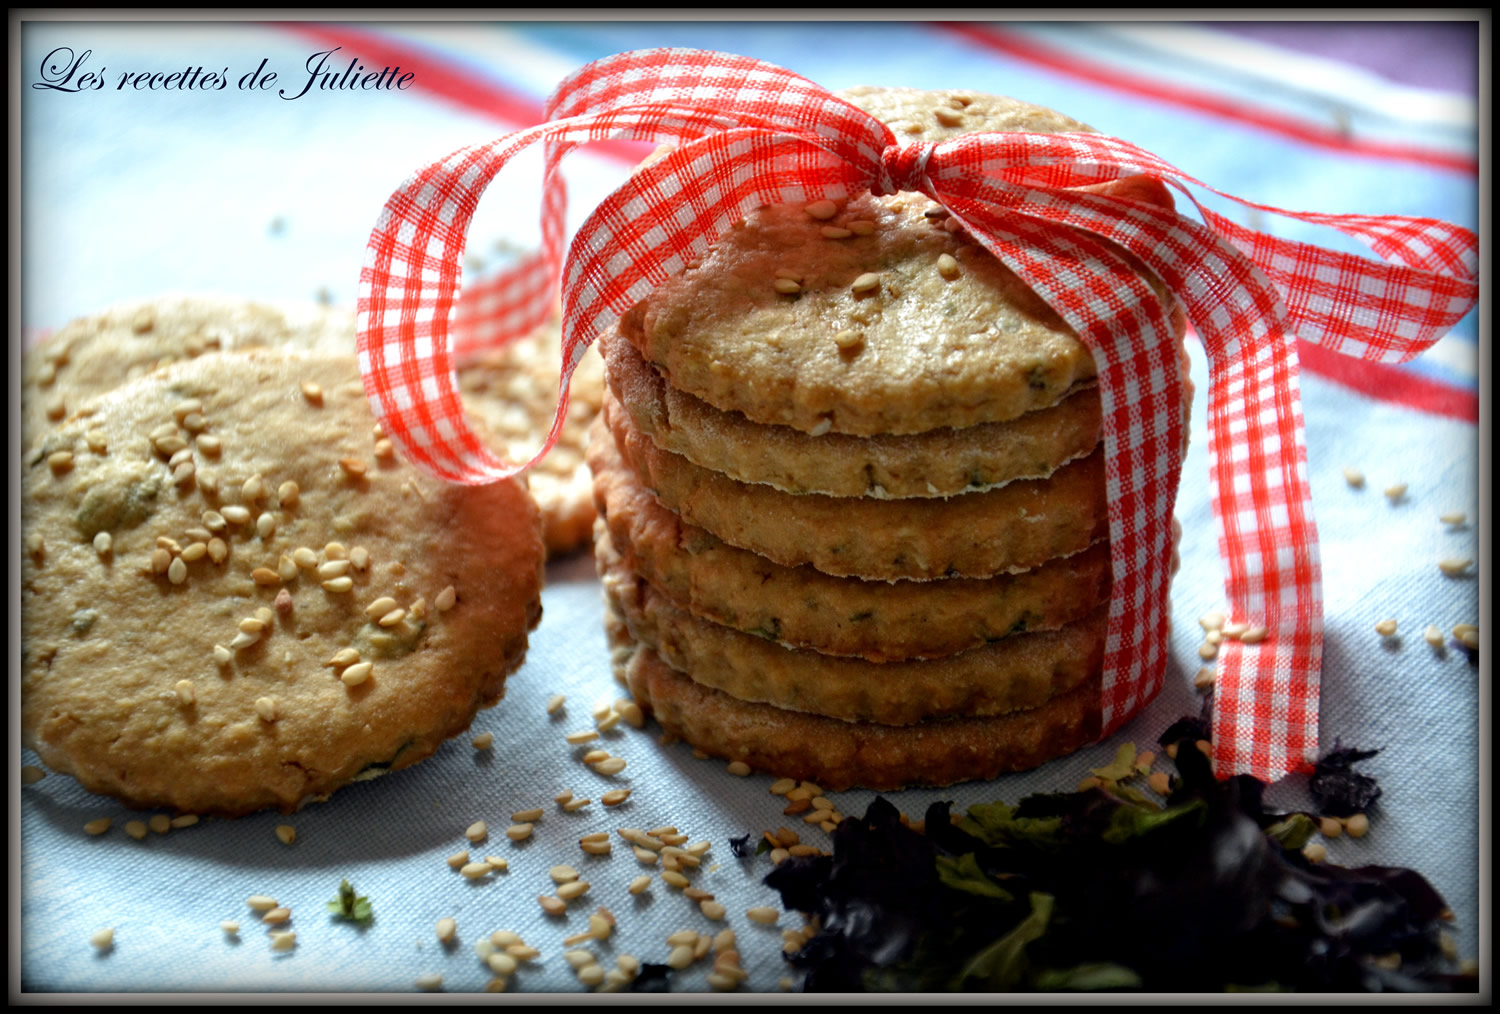 Biscuits with sesame seeds and seaweed